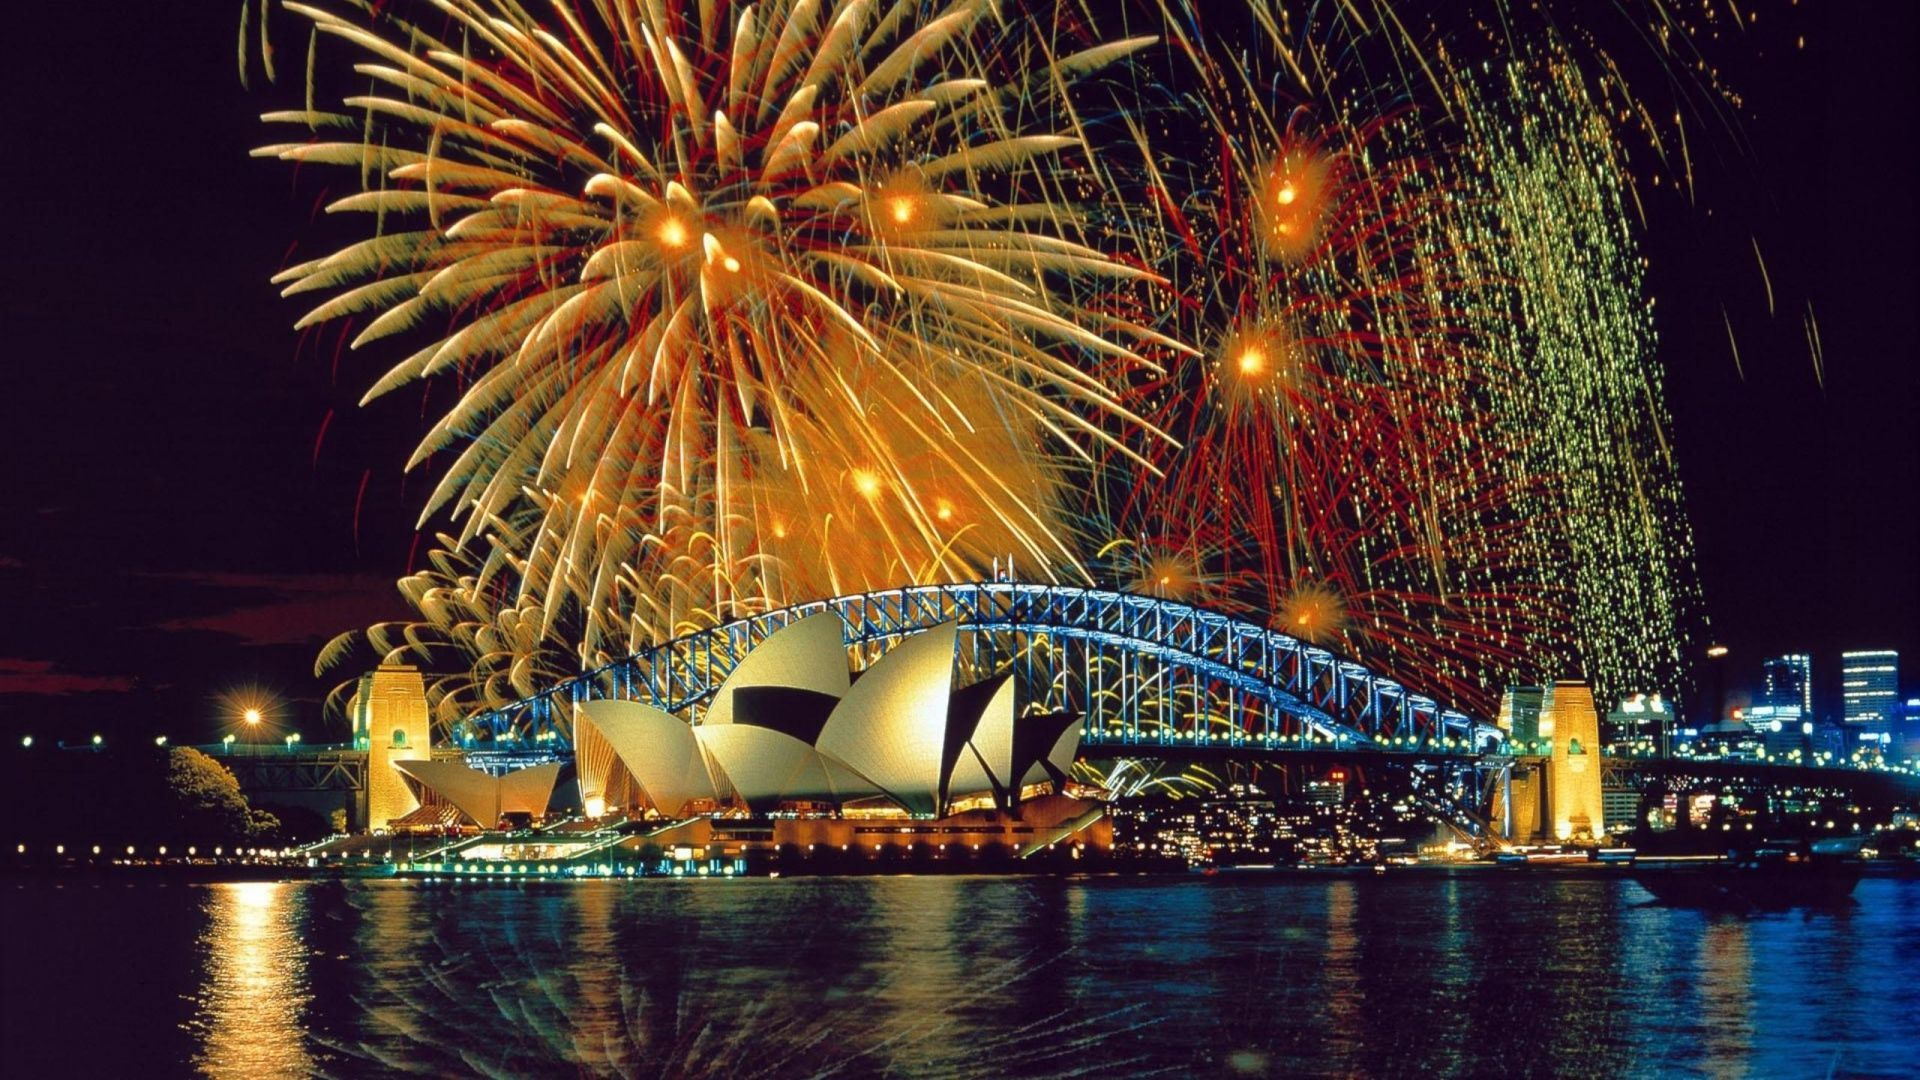 sydney wallpapers sydney backgrounds for pc new years eve events asheville nye